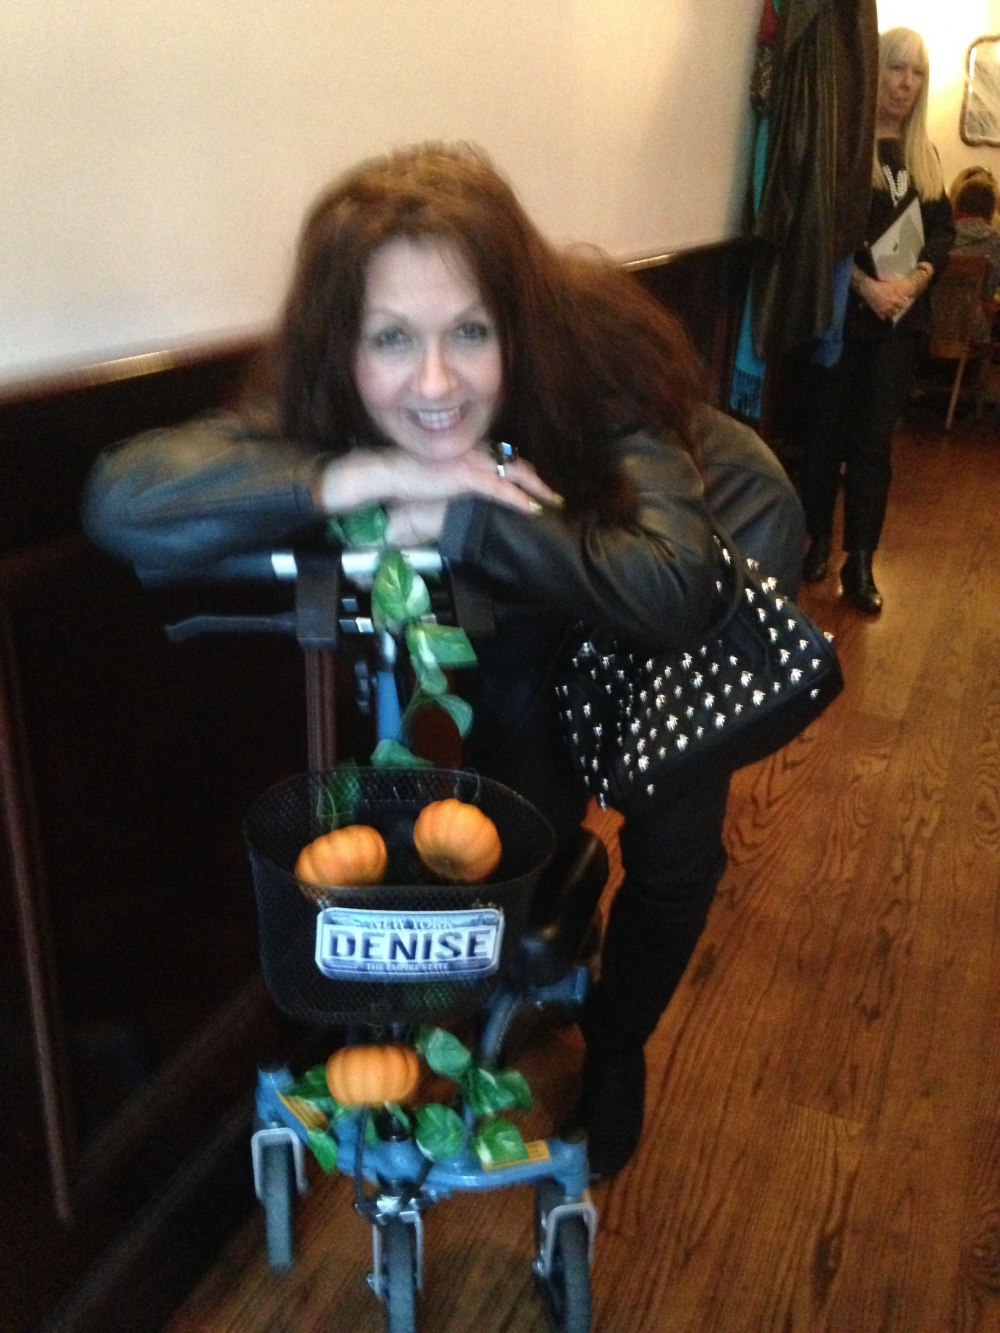 Denise on the Swivelmate Knee Walker from New York New York November 2014